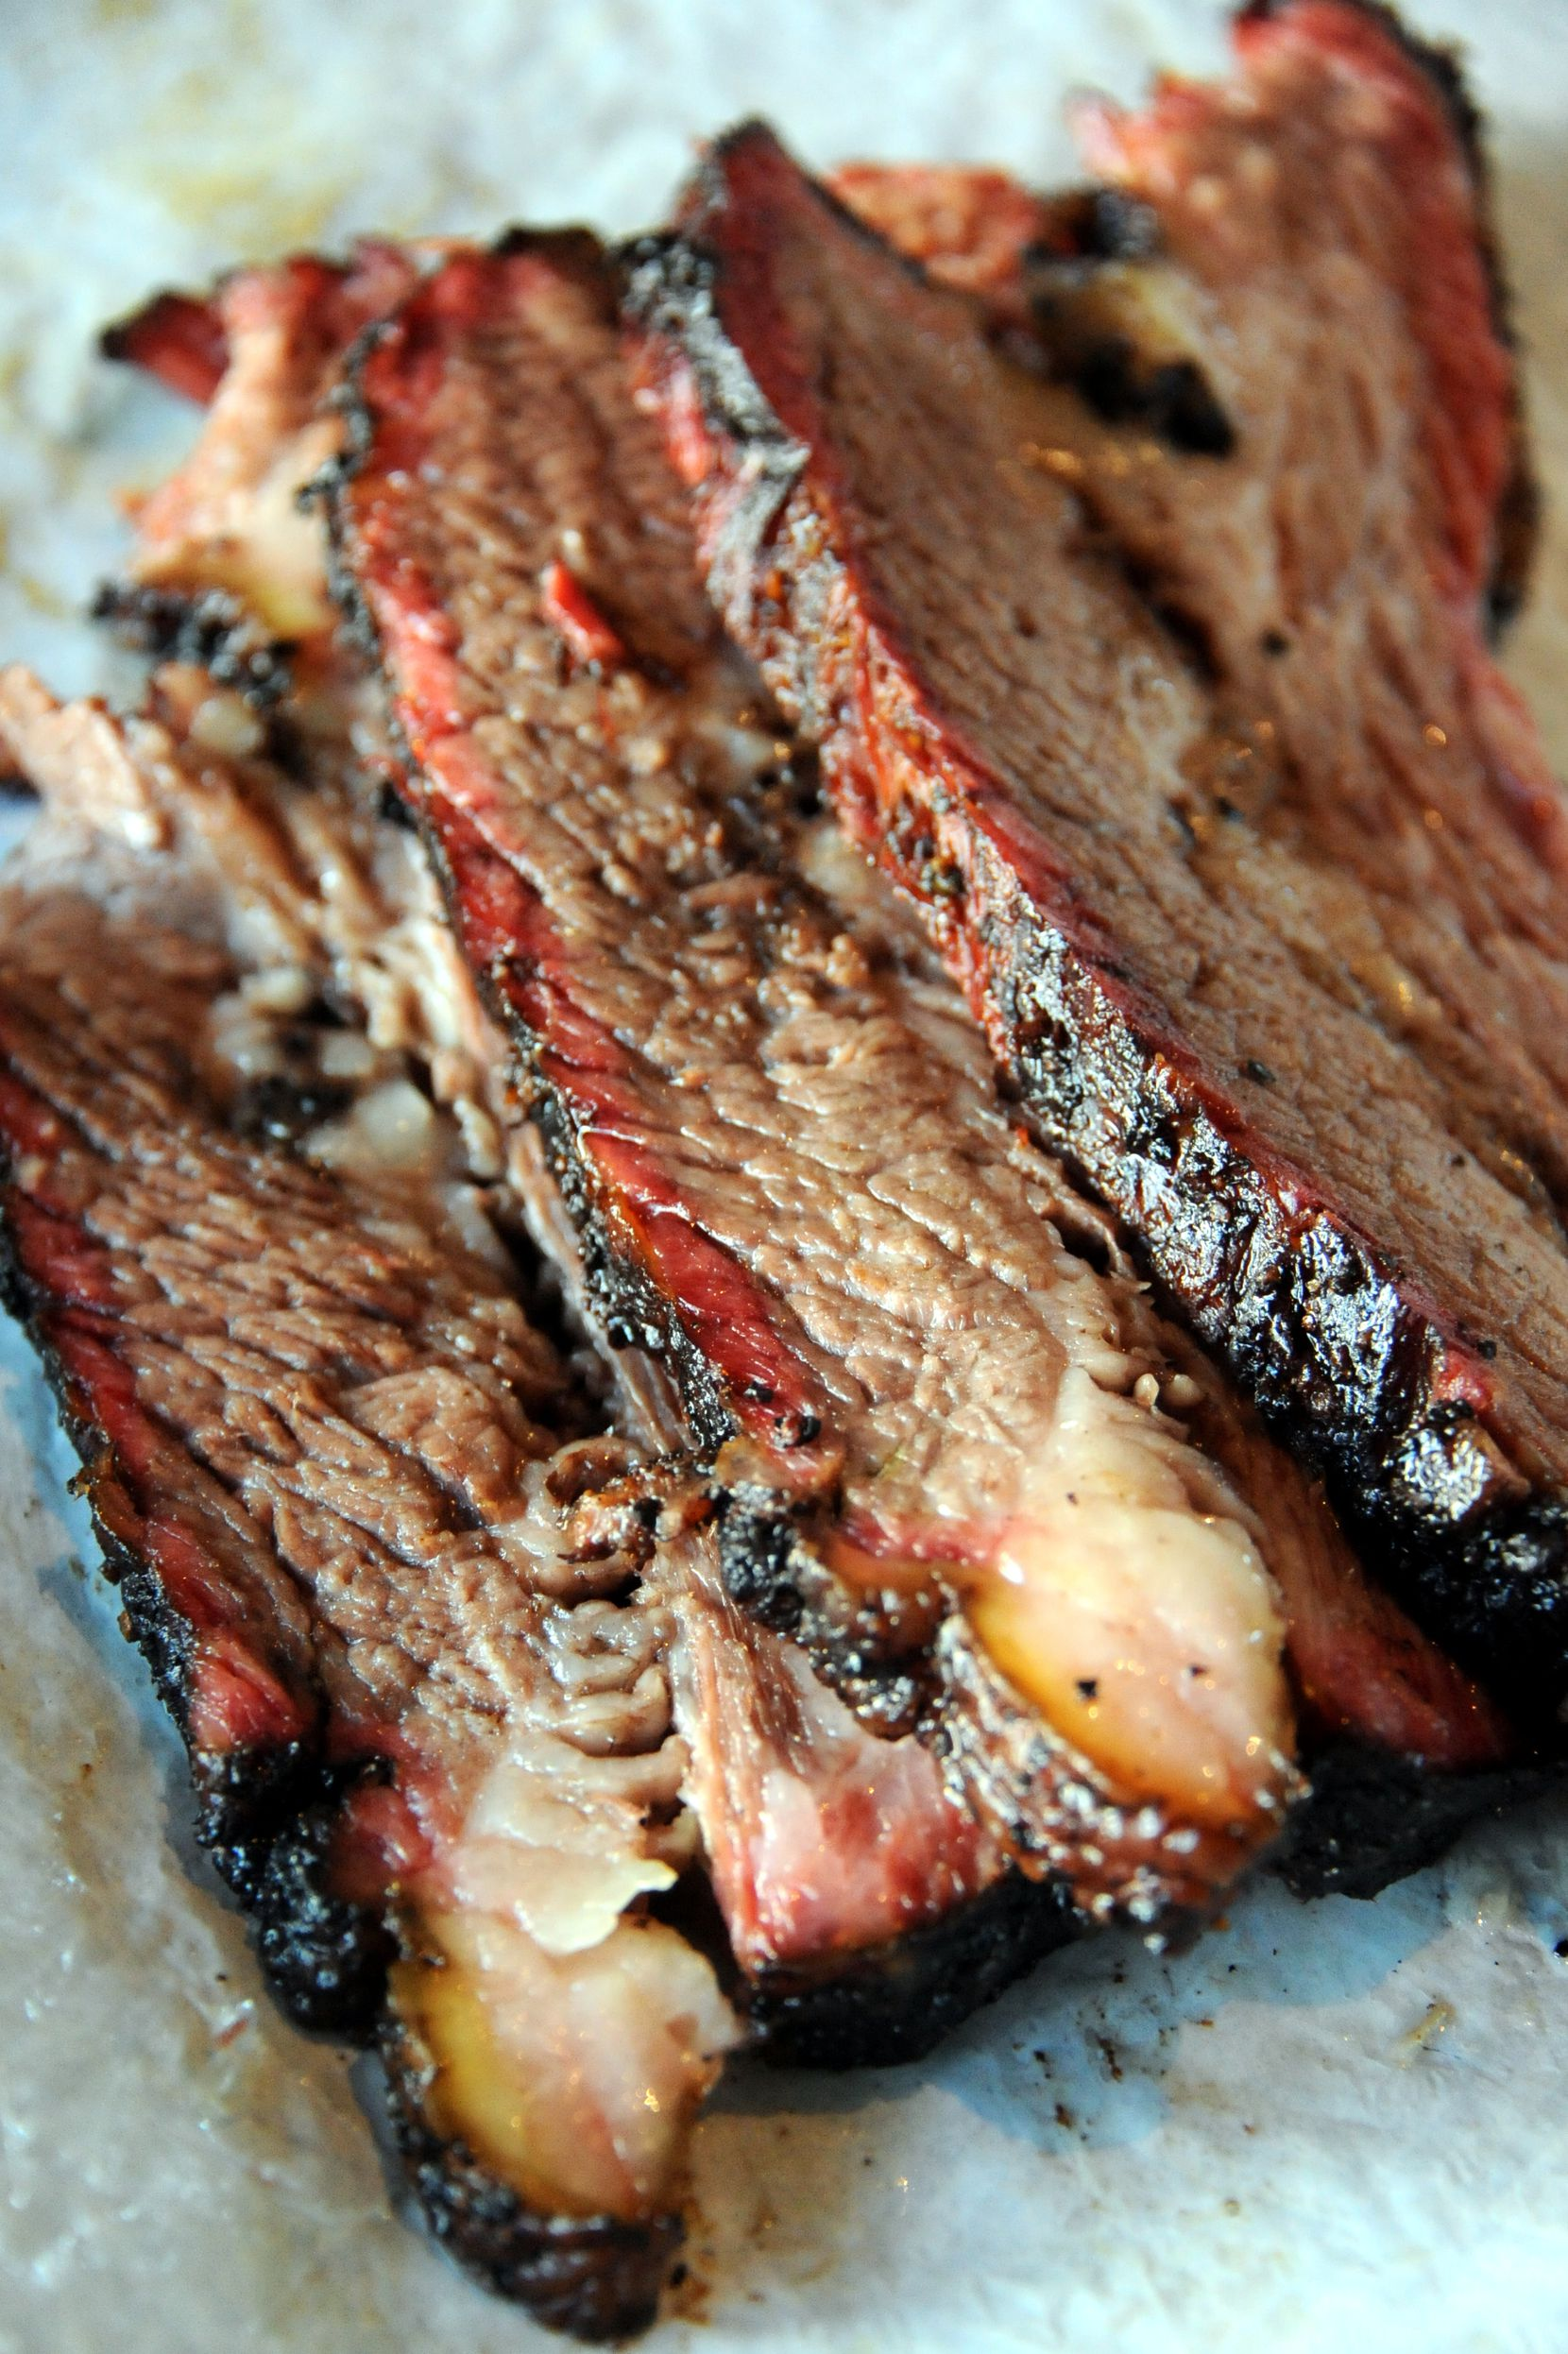 """The brisket rubbed with salt and pepper (and """"a few other seasonings,"""" says owner Larry Lavine) at the new Ten 50 BBQ in Richardson, TX on August 11, 2014."""